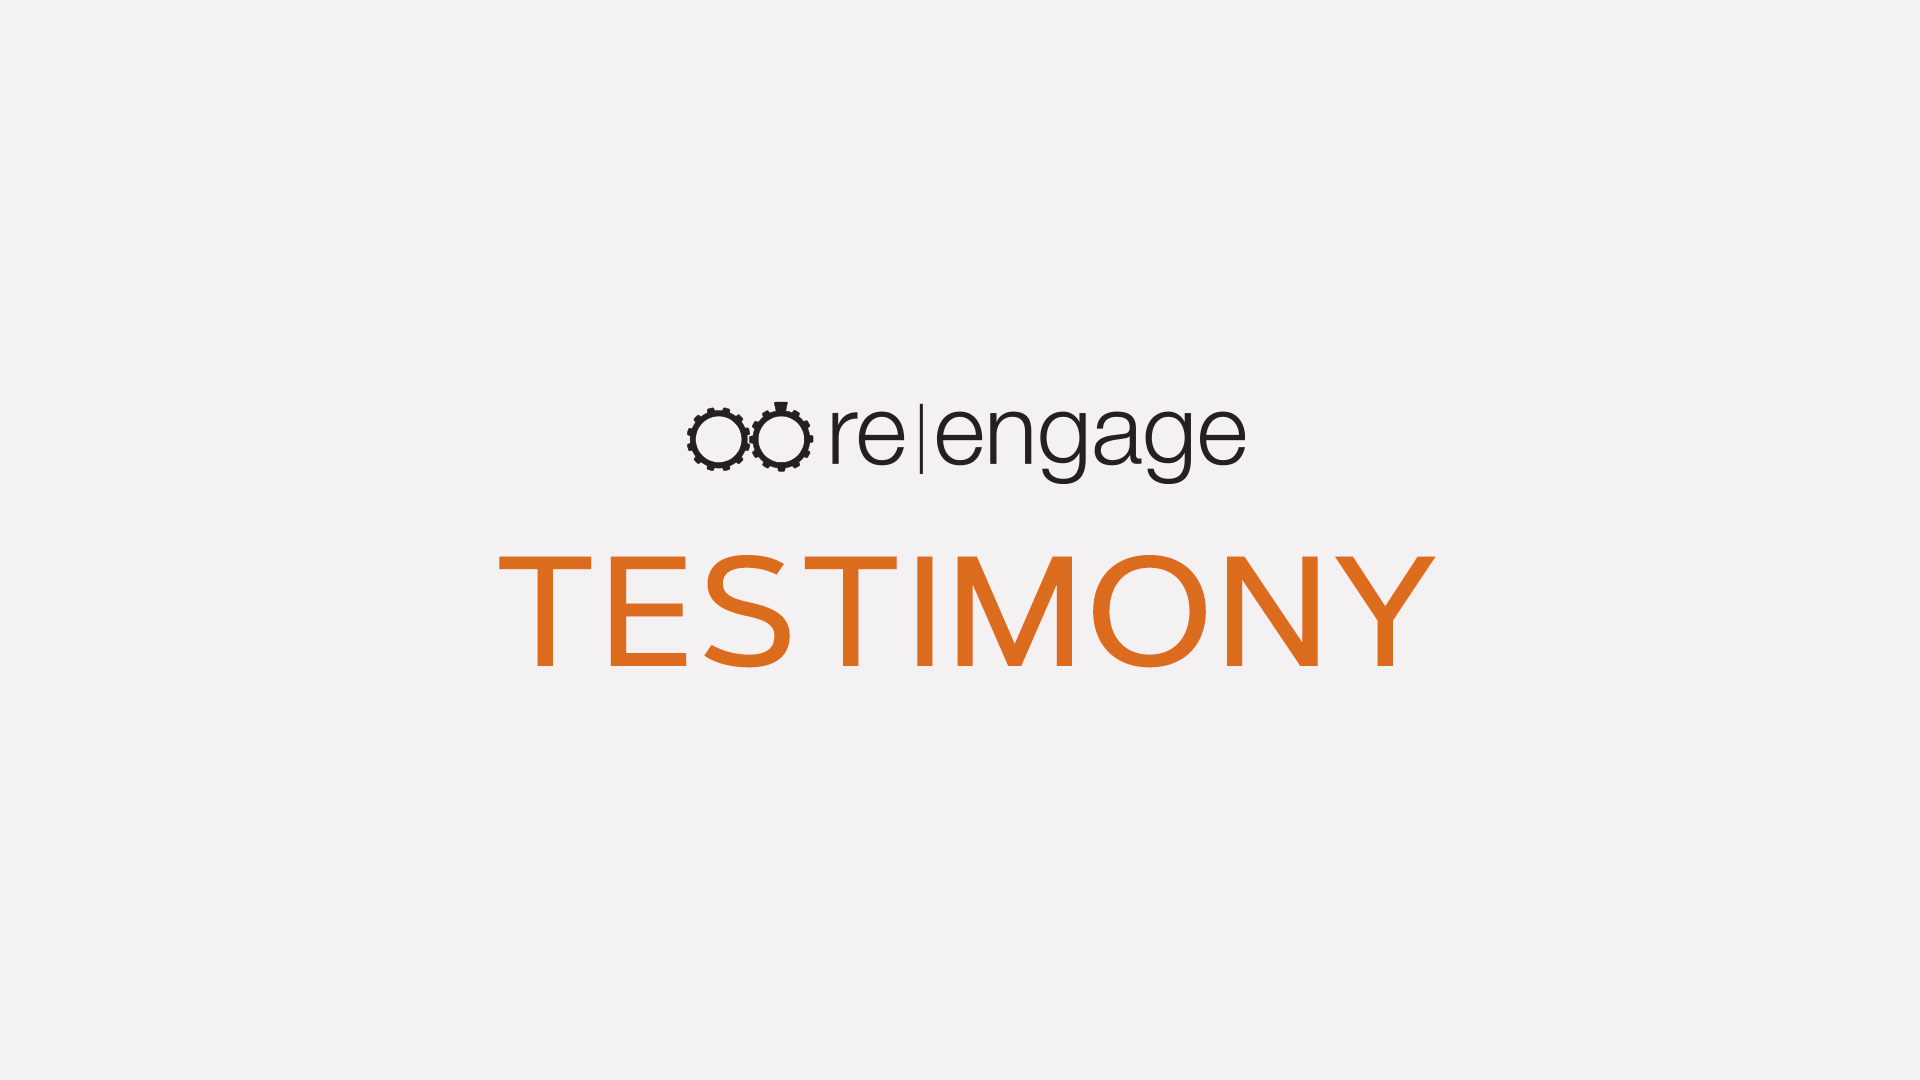 Scott and Kristen Kedersha - re|engage Testimony